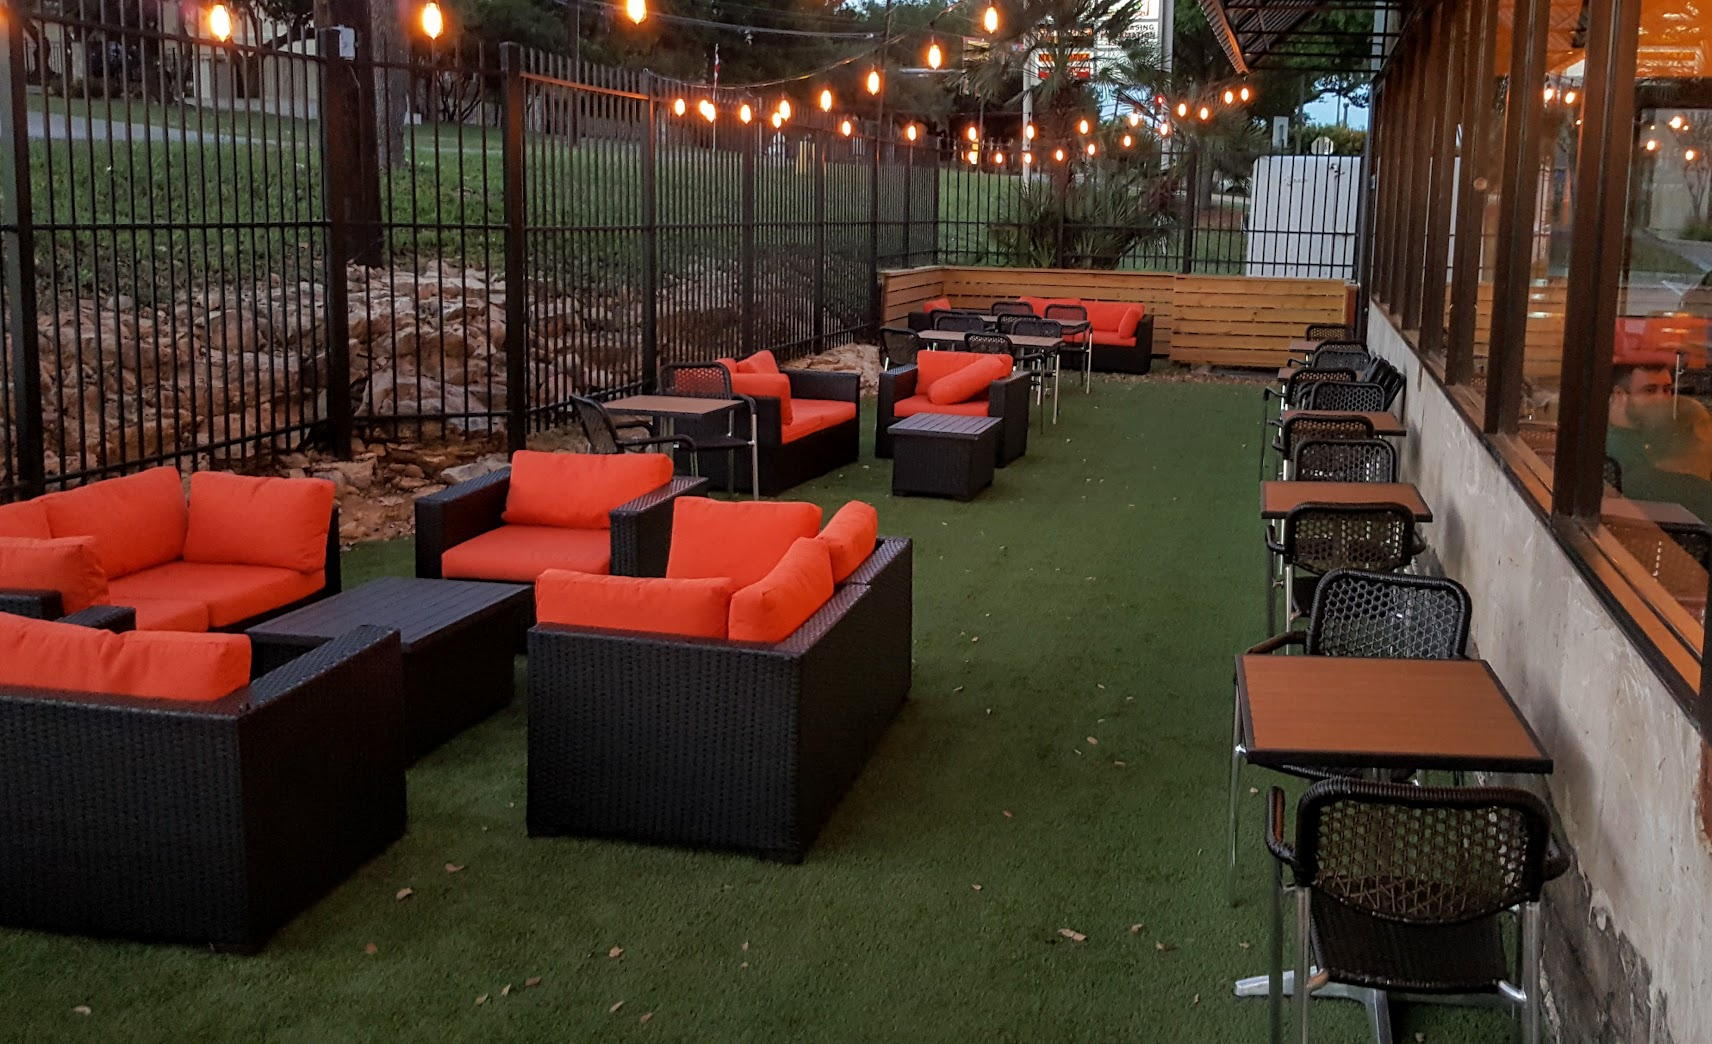 The patio at Weathered Souls Brewing Co.